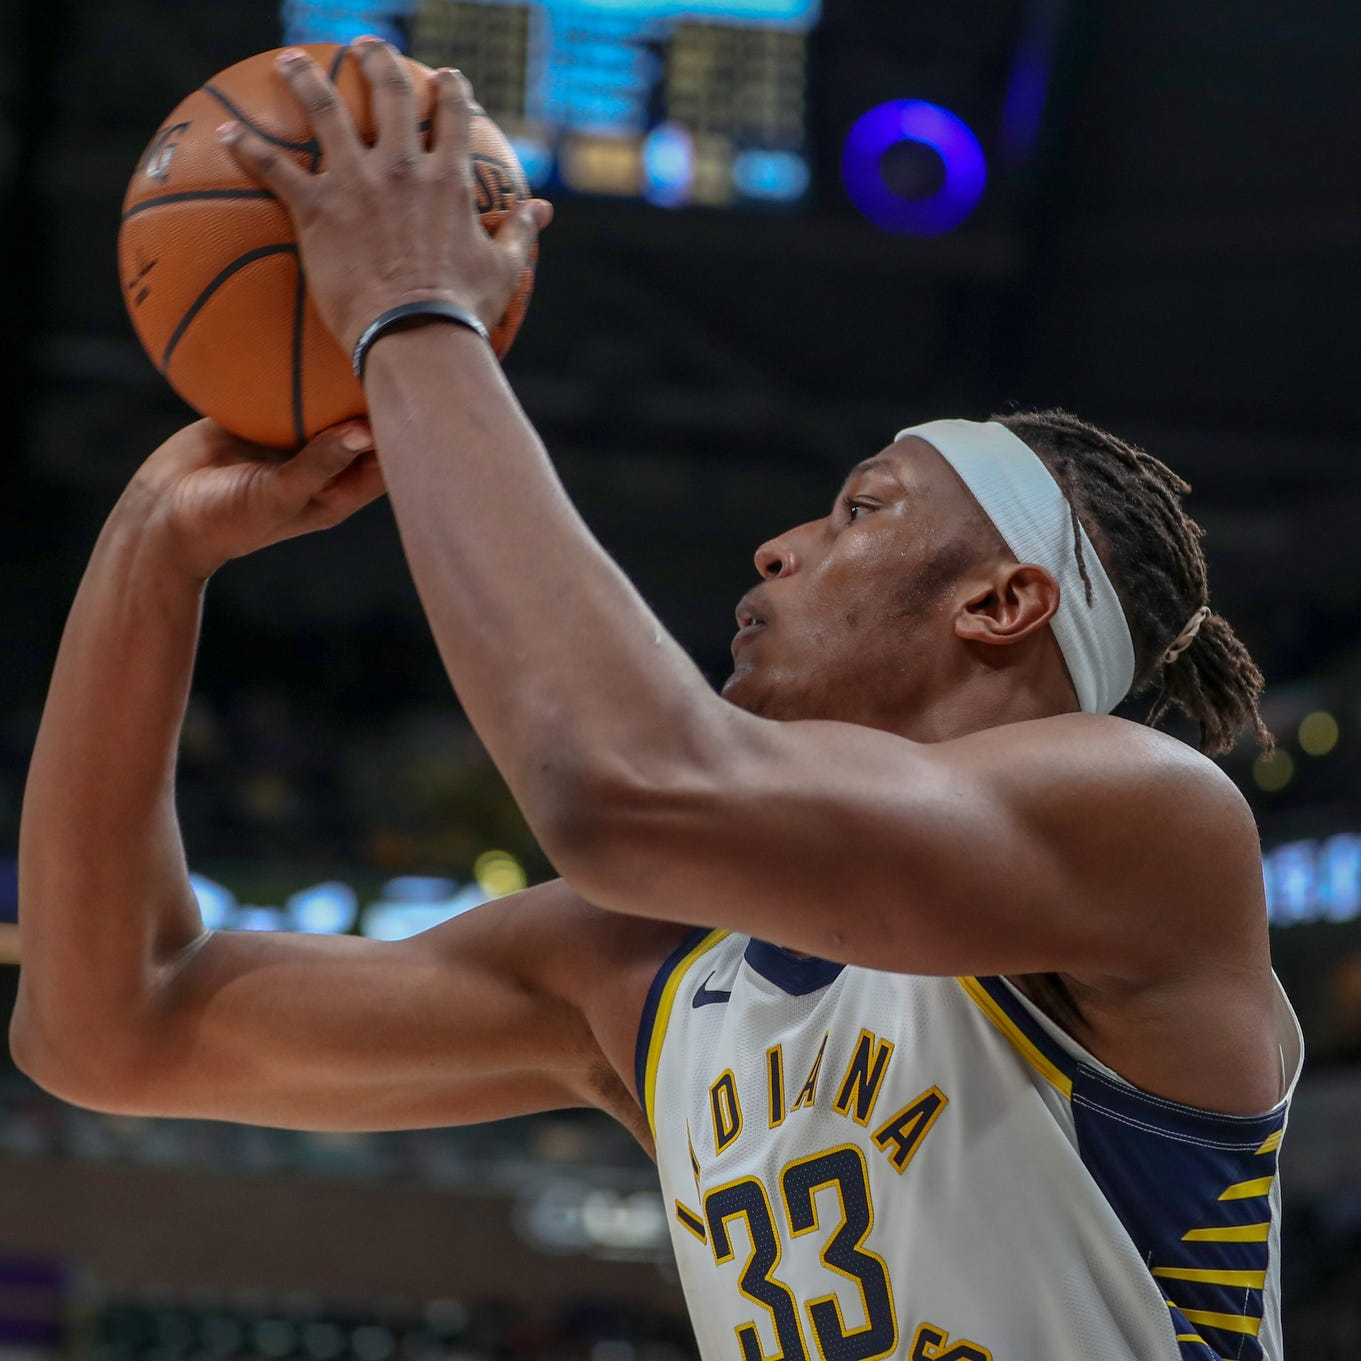 Indiana Pacers players joke Myles Turner's ponytail deserves credit for his success